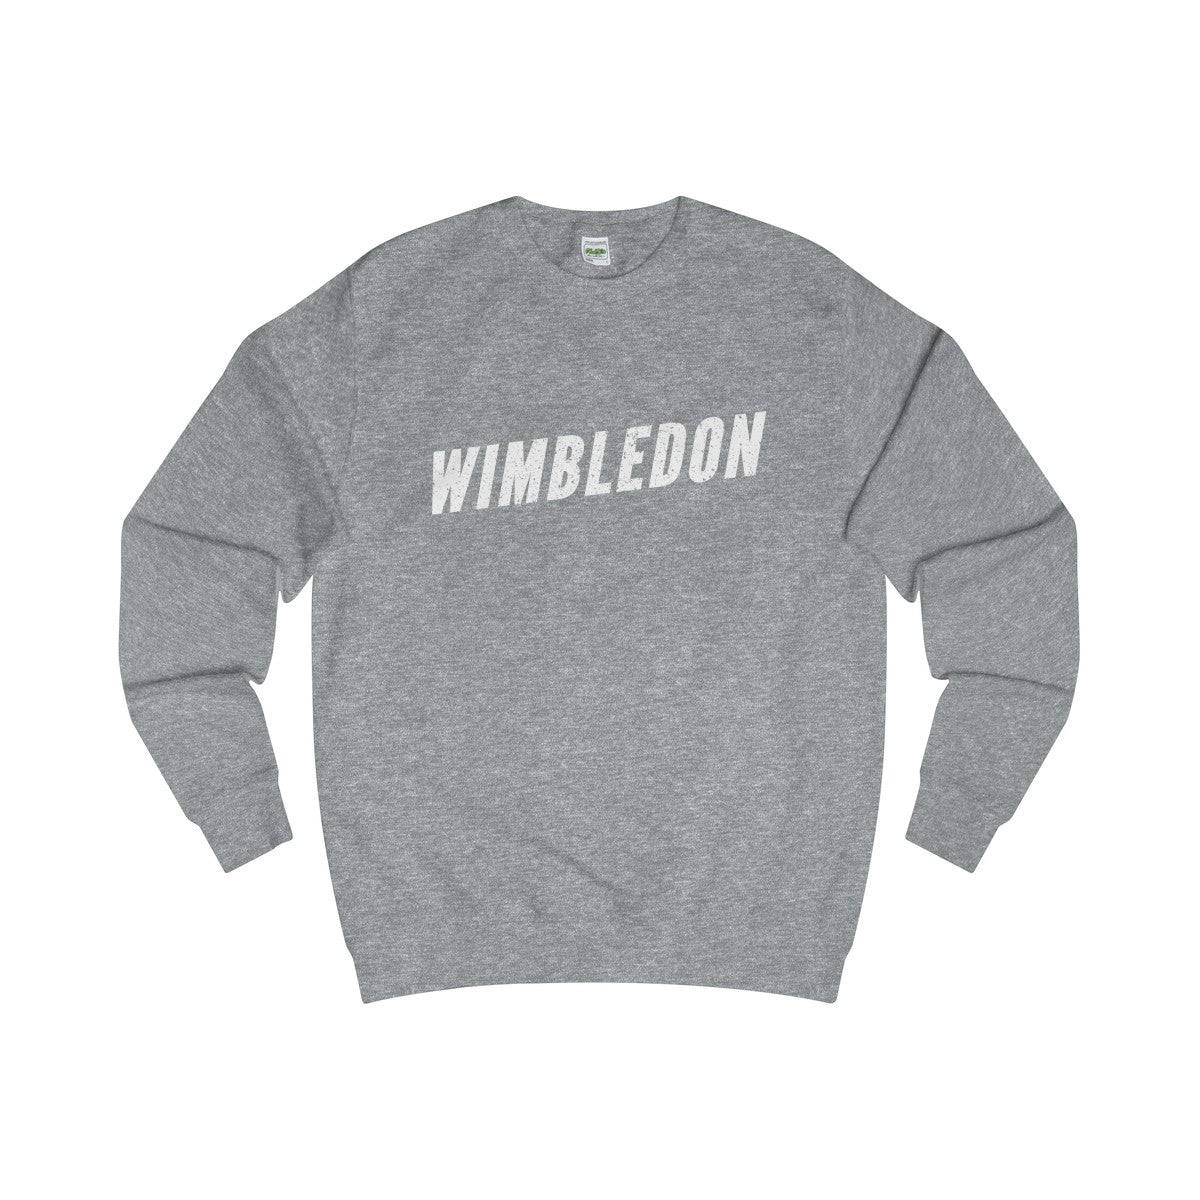 Wimbledon Sweater